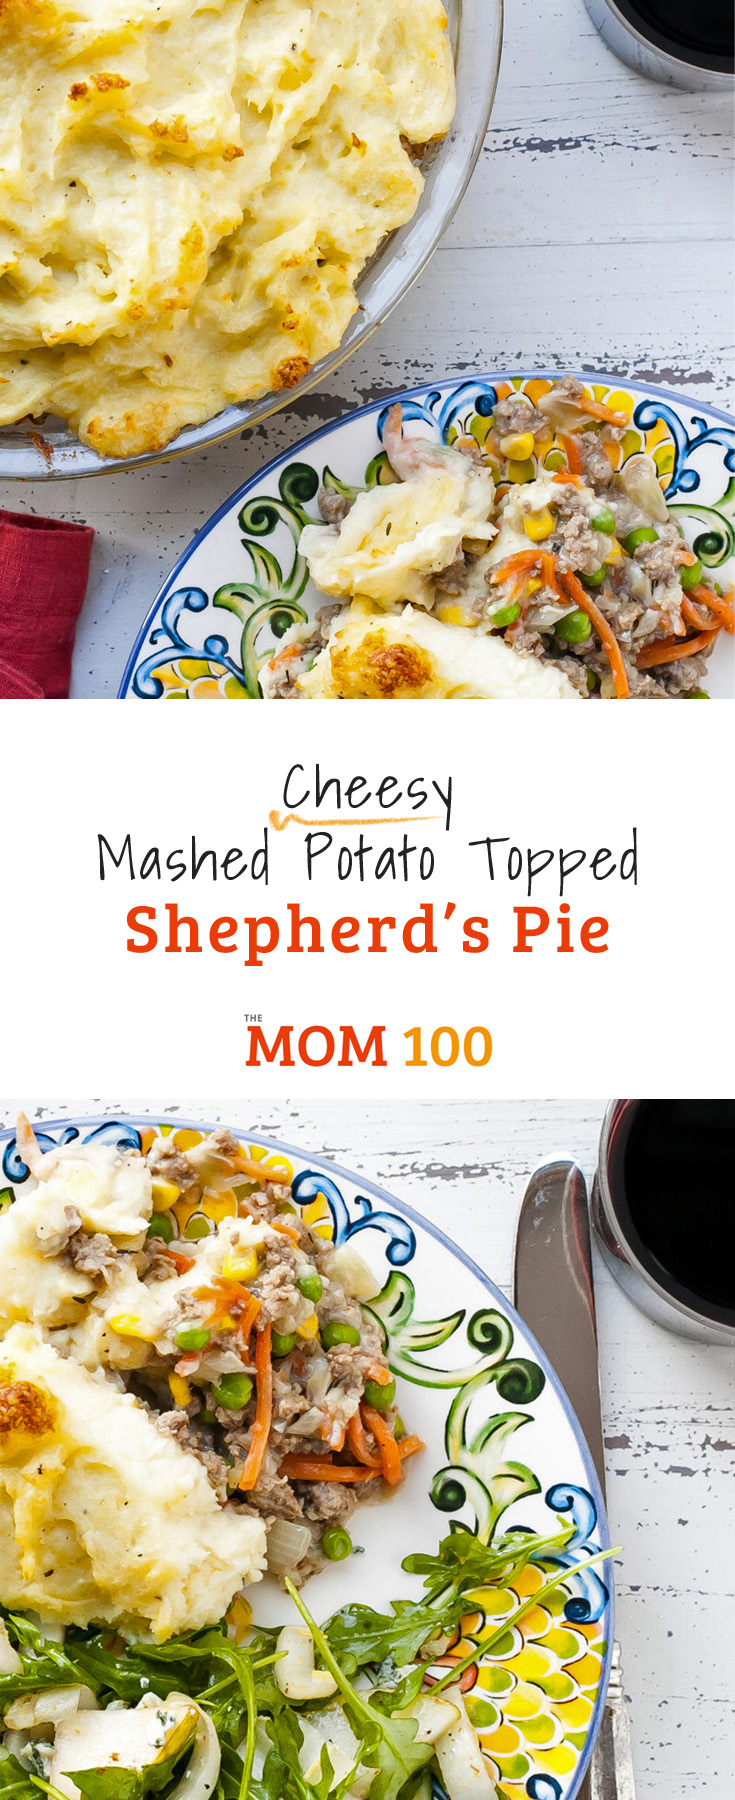 When meat and potatoes co-exist in one homey comfort food like this Cheesy Mashed Potato Topped Shepherd's Pie, happiness and goodwill abound.